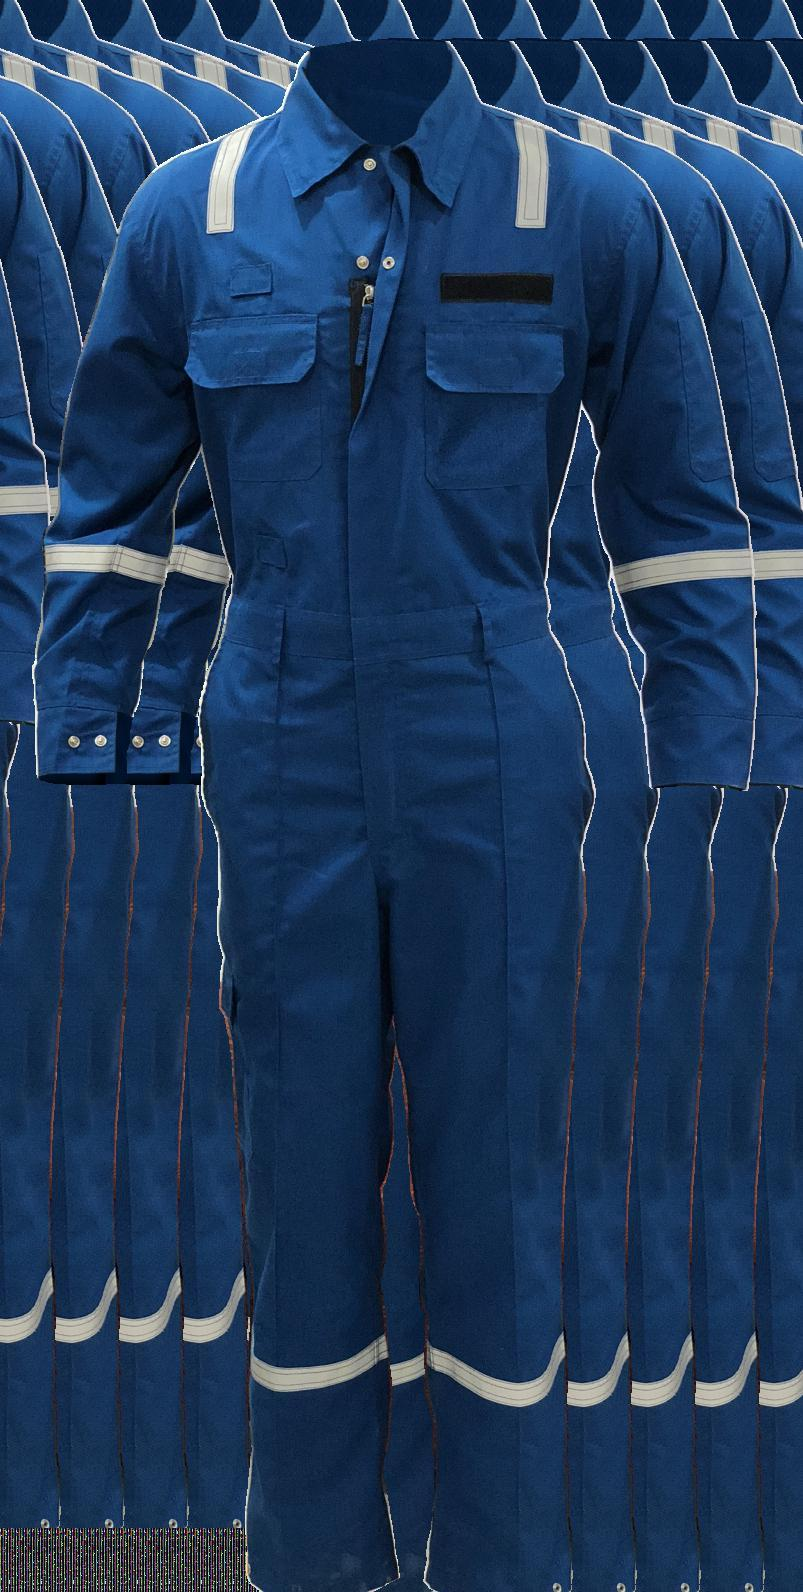 Coverall Overall Dangree BoilerSuit Hanger Loop Flat Safety